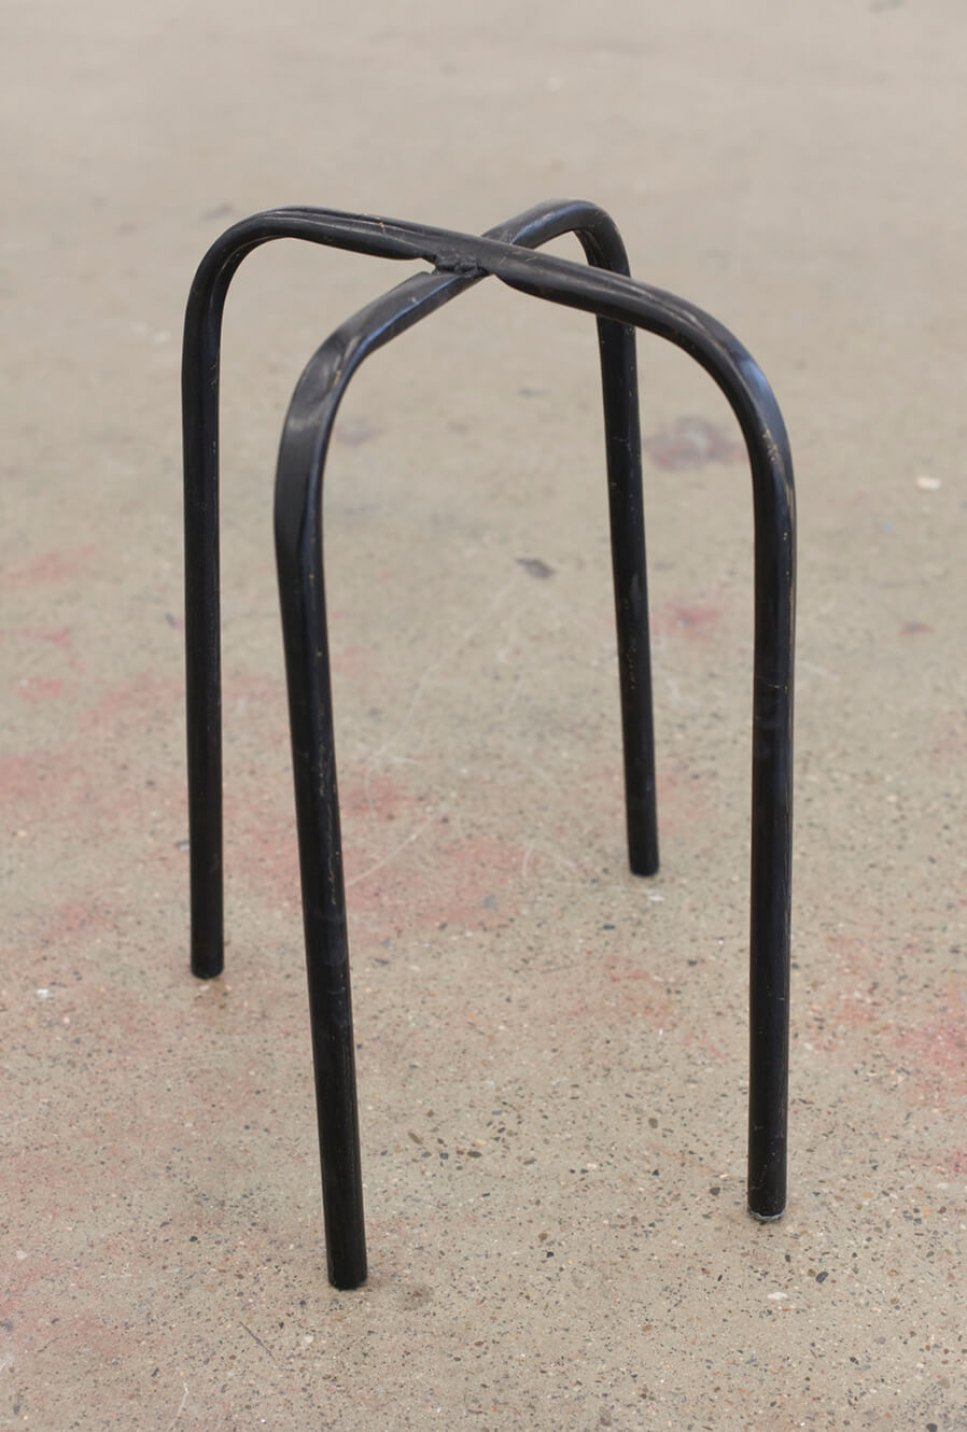 Adriano Costa, <em>Spide Chair,</em> 2016, bronze, 30 × 30 × 45 cm - Mendes Wood DM